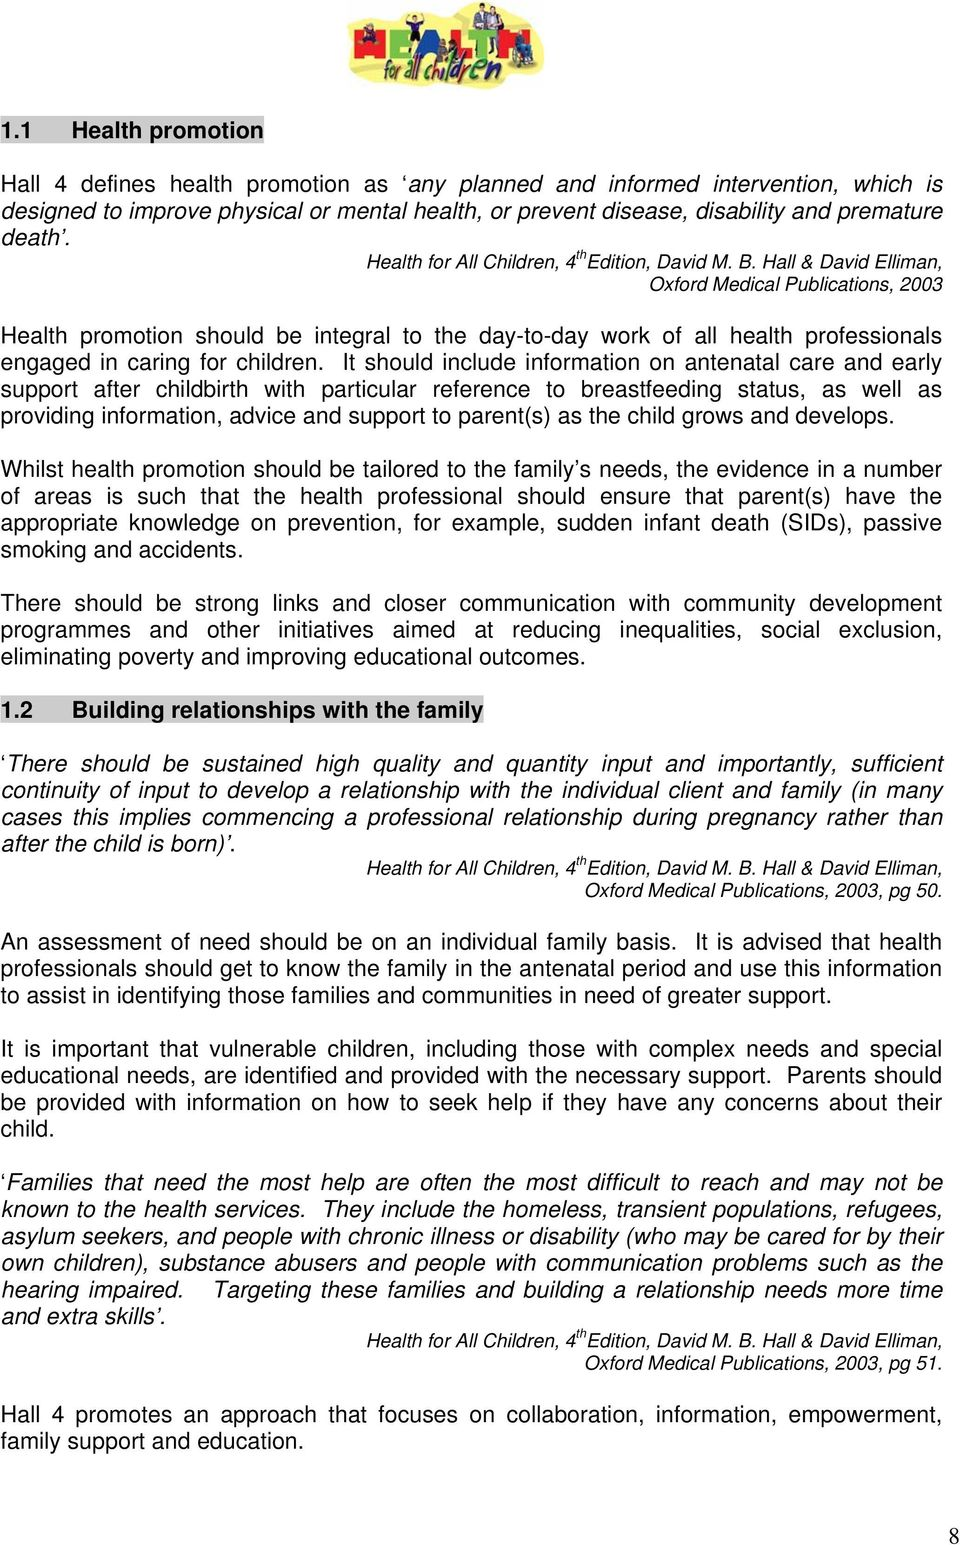 Hall & David Elliman, Oxford Medical Publications, 2003 Health promotion should be integral to the day-to-day work of all health professionals engaged in caring for children.